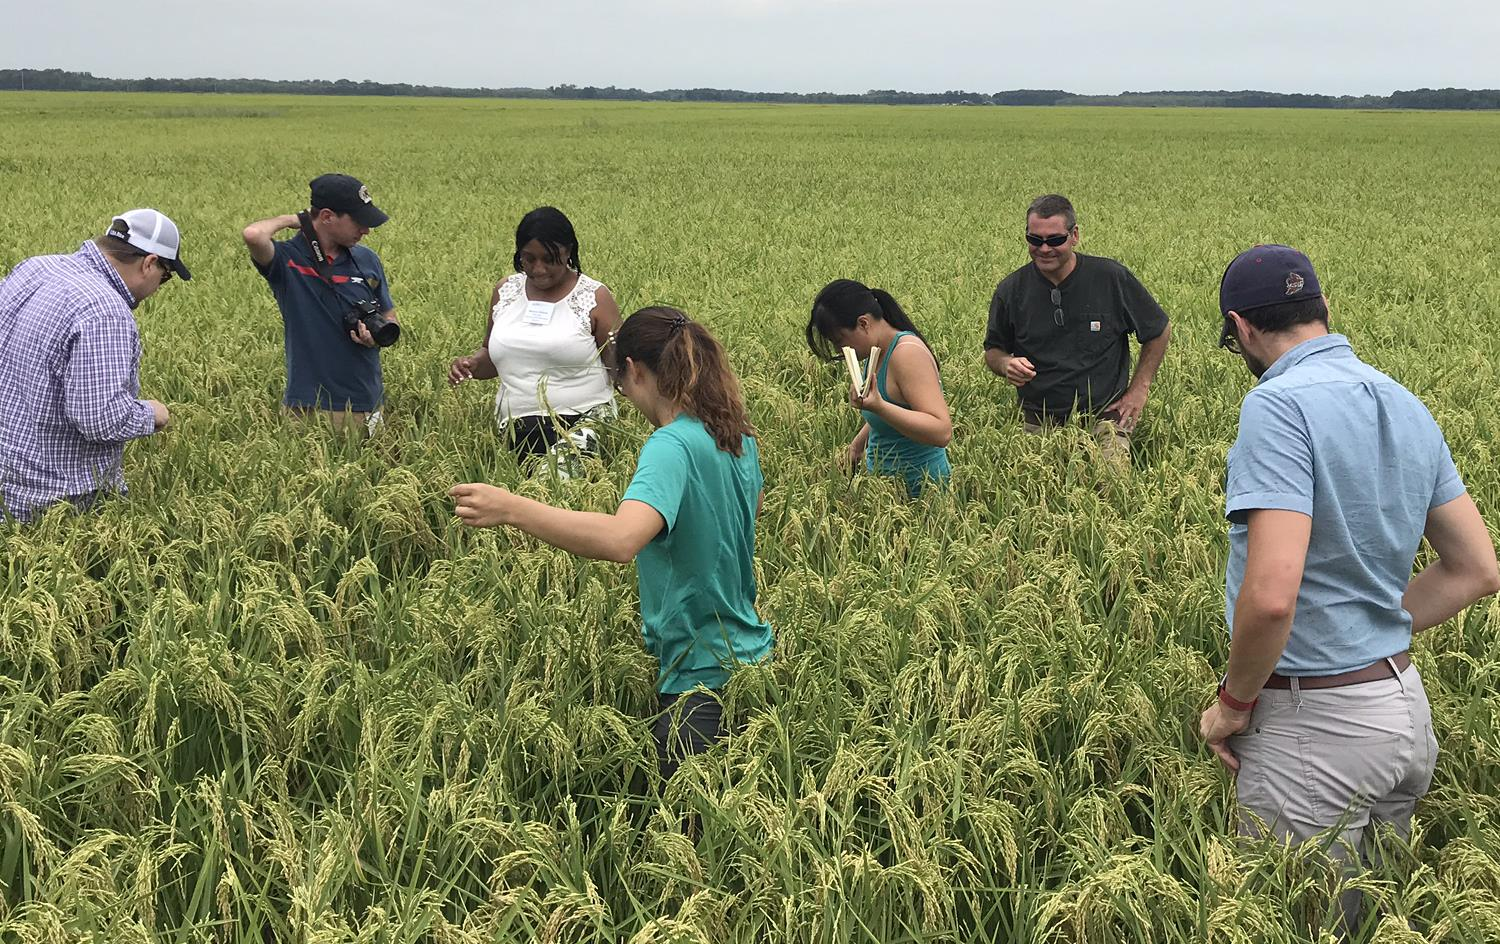 People stand waist-deep in green rice field